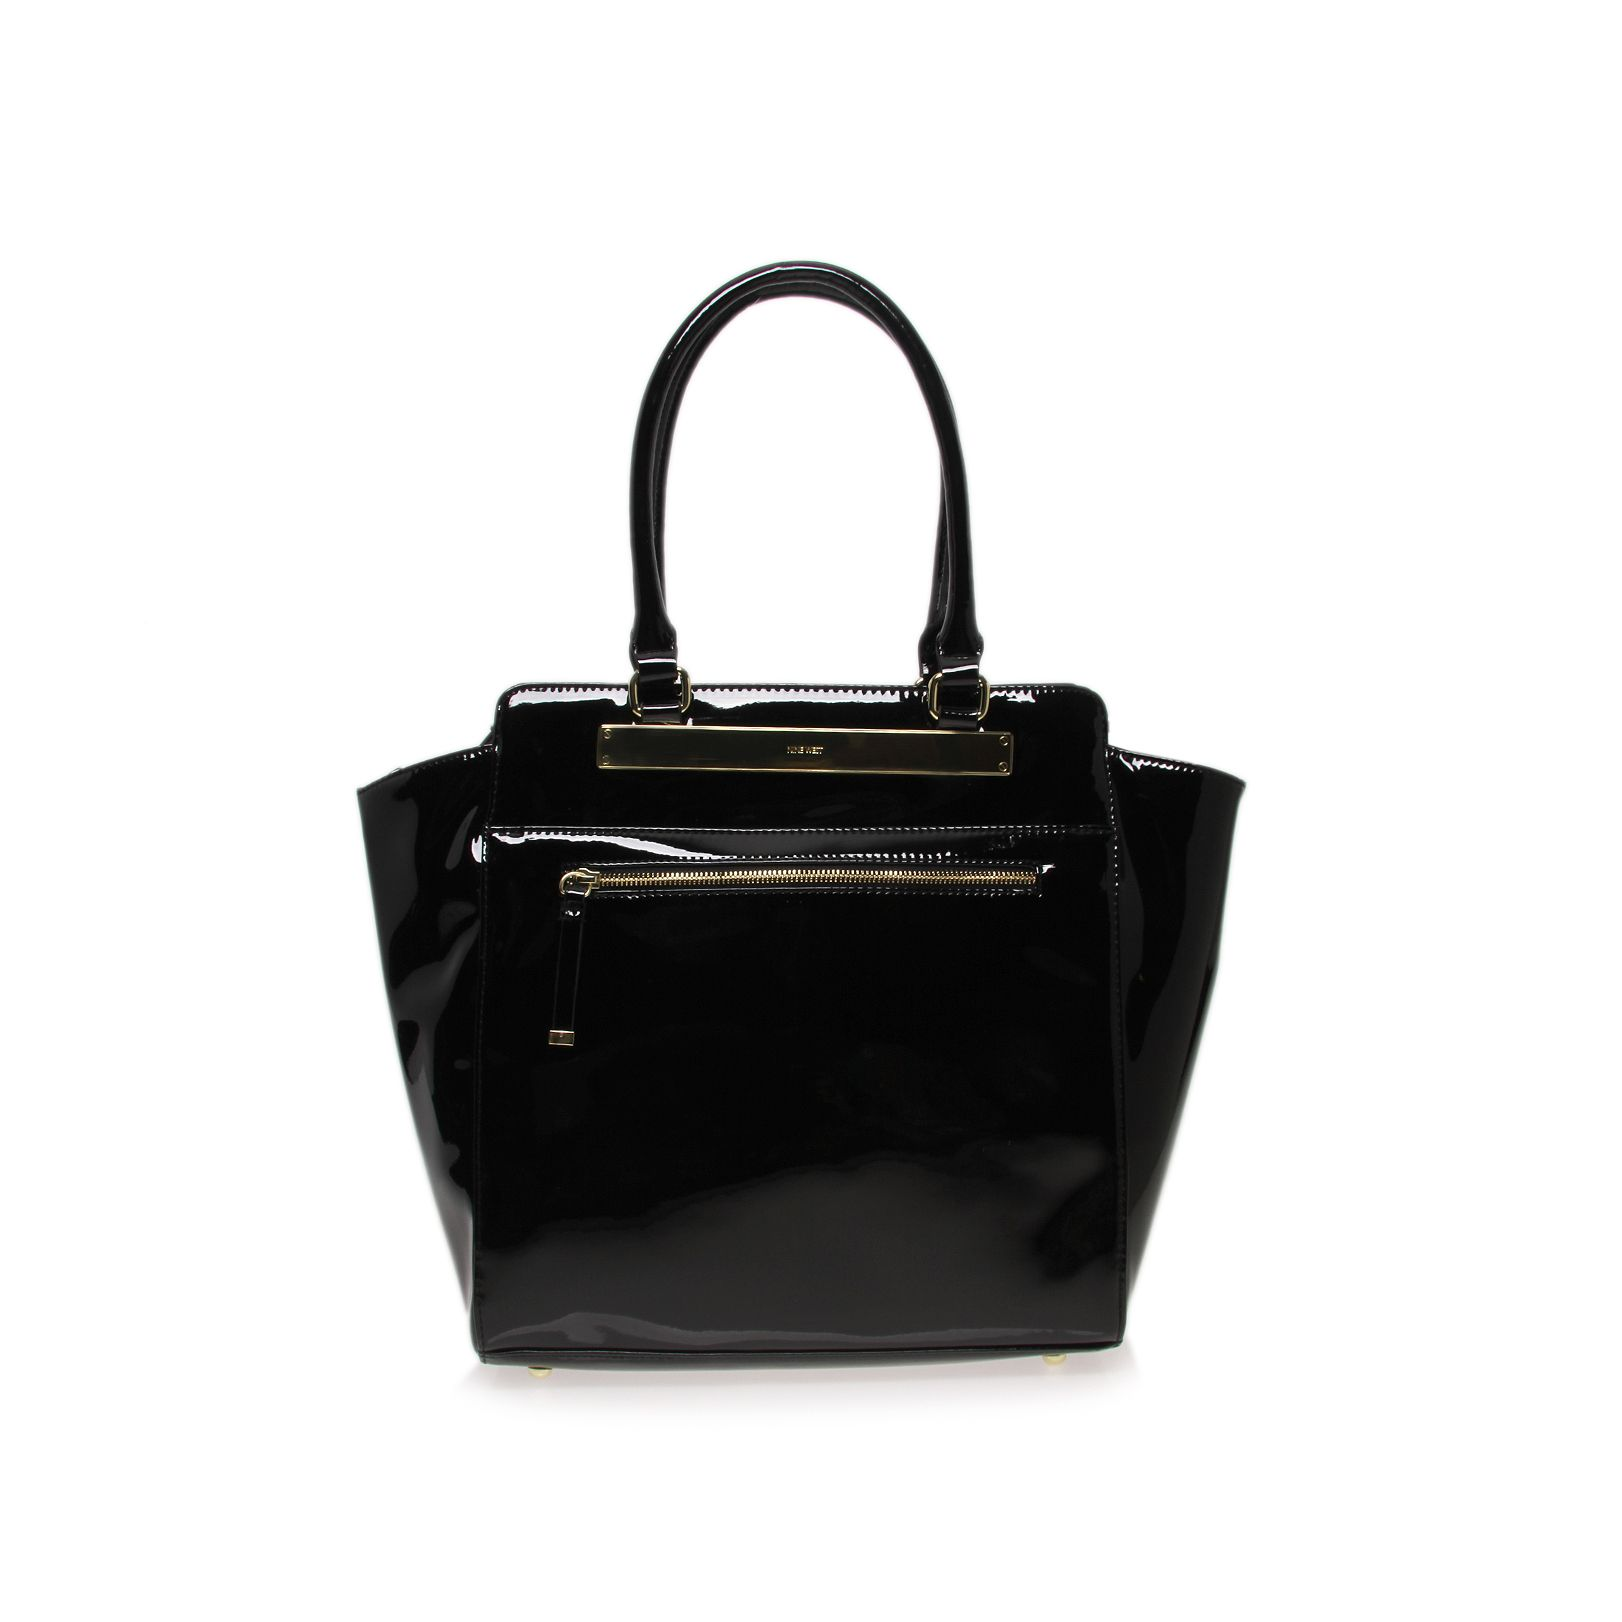 Borderline black tote handbag